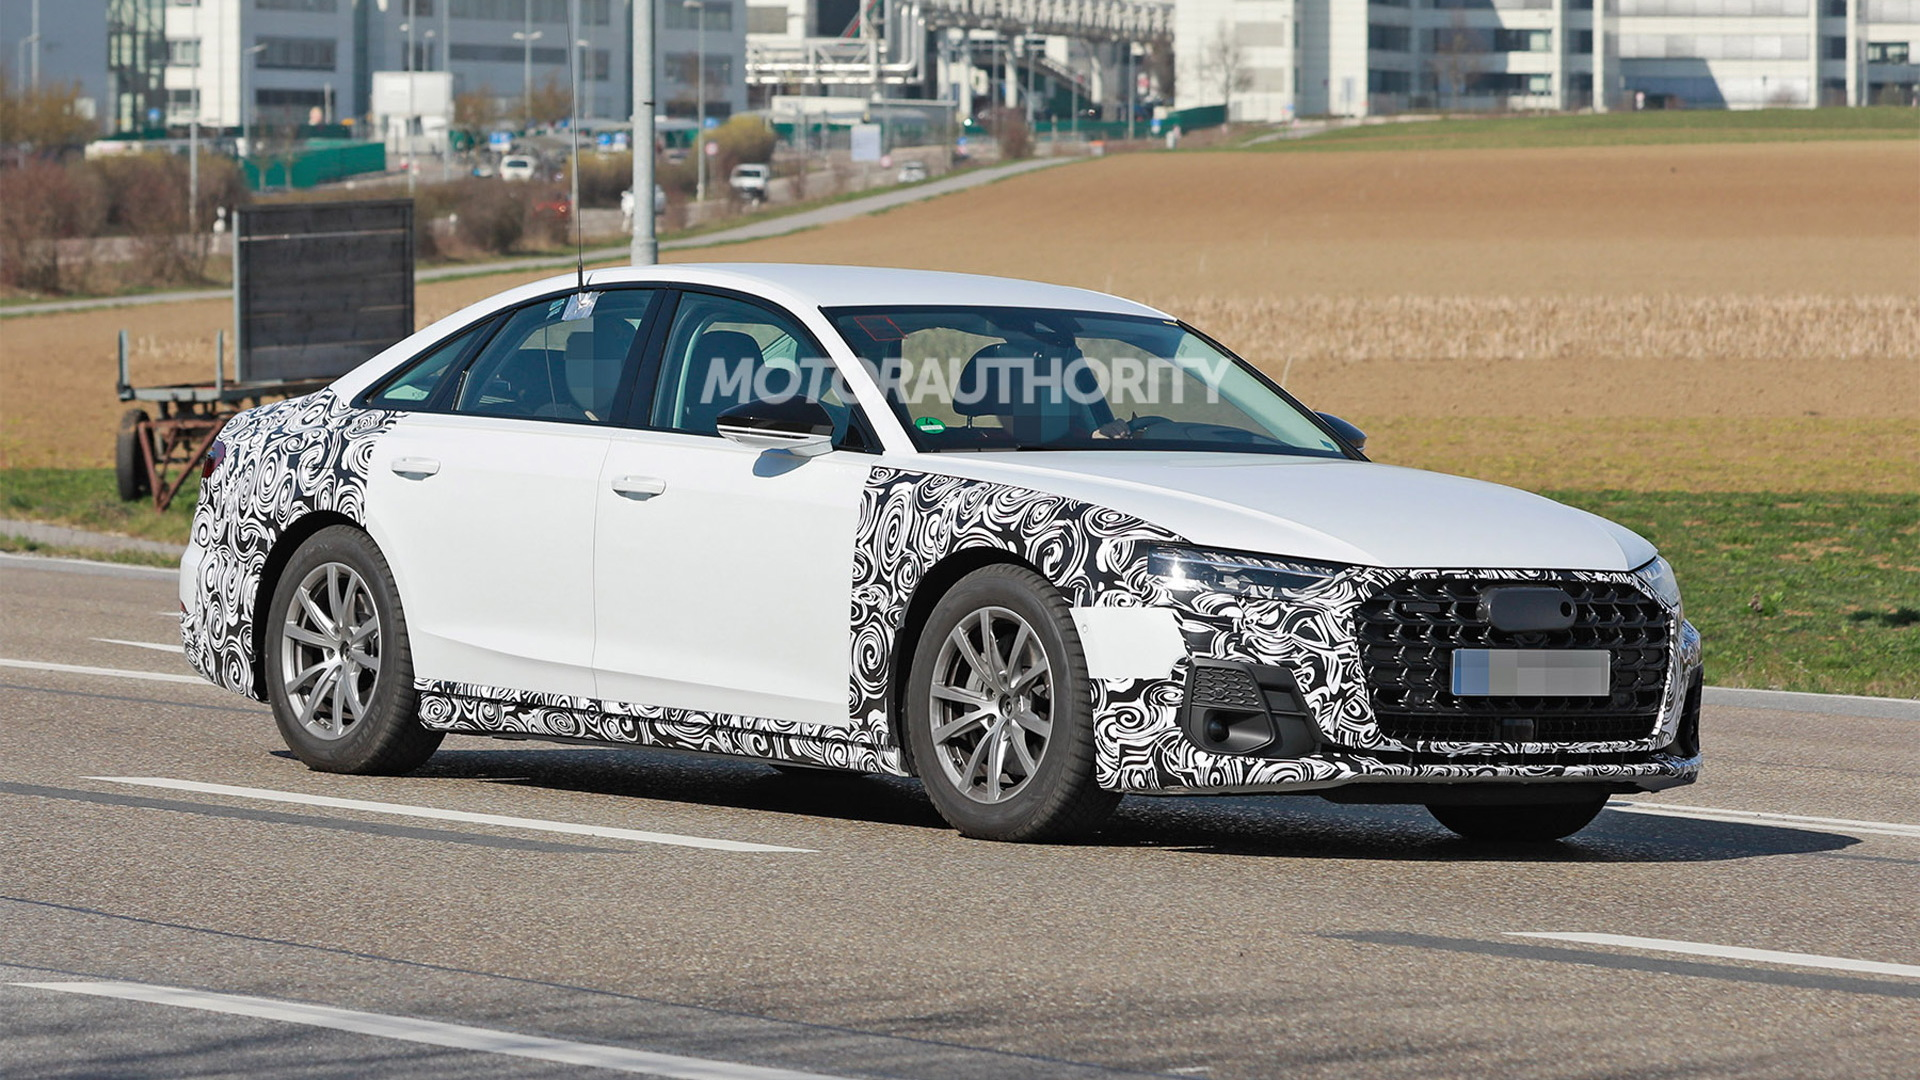 2022 Audi A8 facelift spy shots - Photo credit: S. Baldauf/SB-Medien